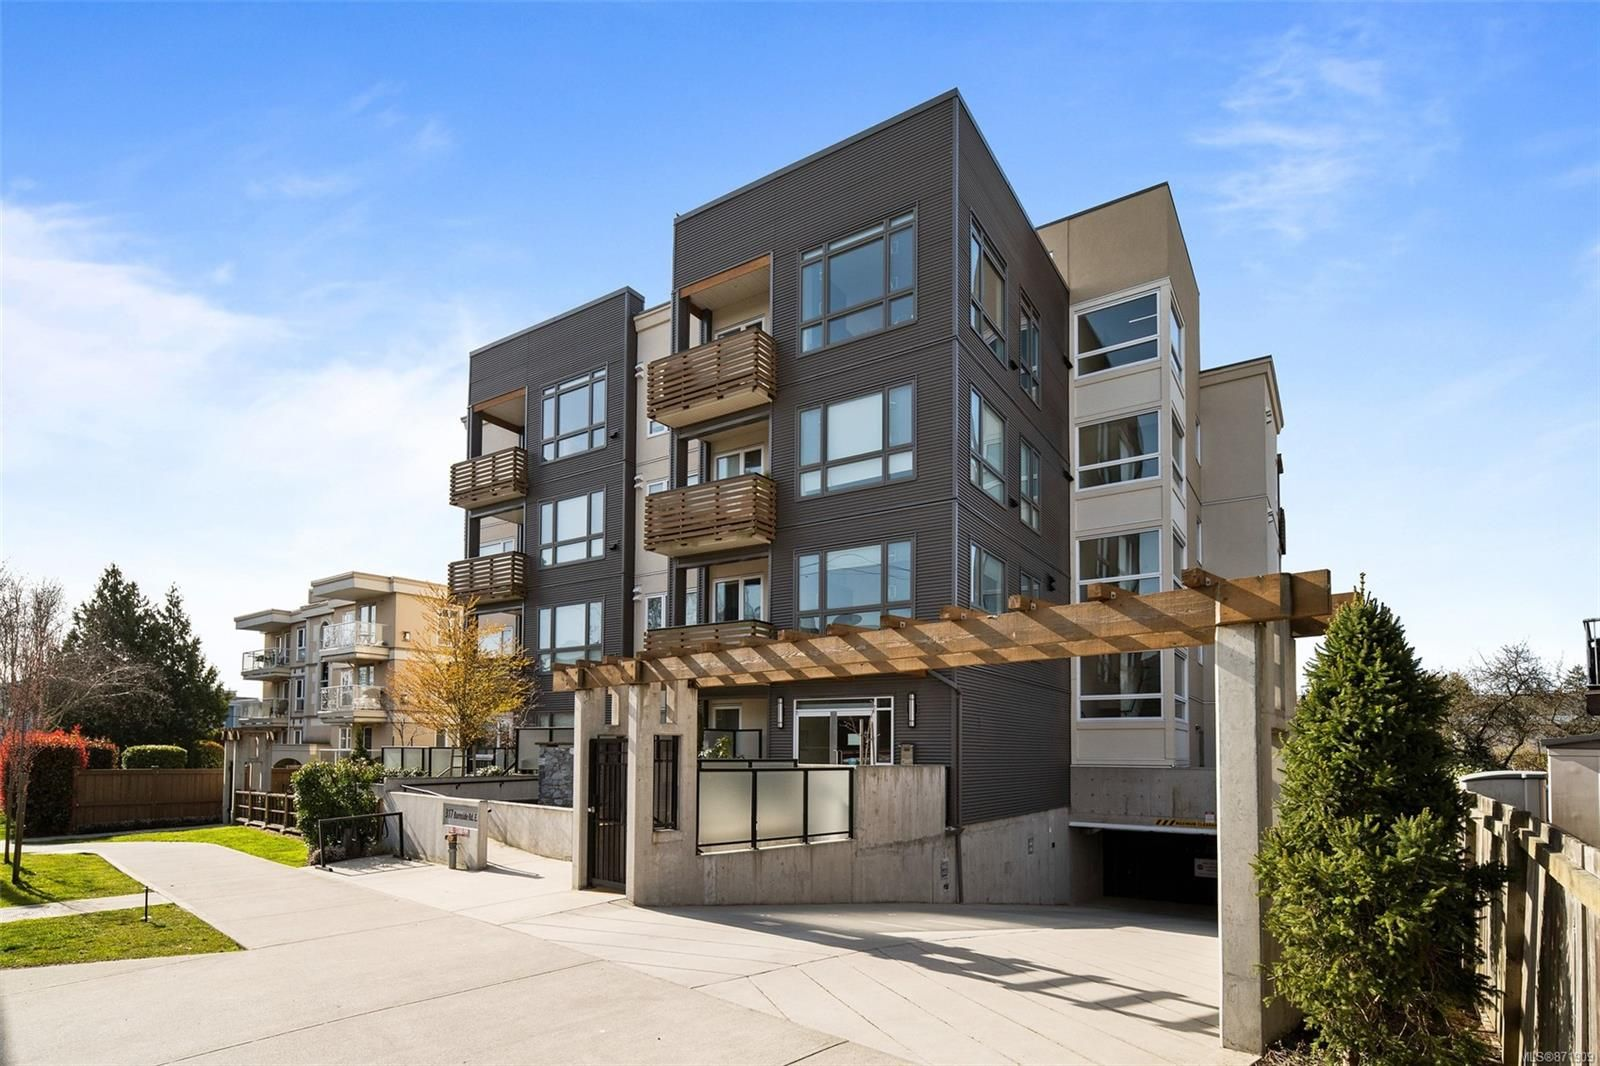 Main Photo: 403 317 E Burnside Rd in : Vi Burnside Condo for sale (Victoria)  : MLS®# 871909